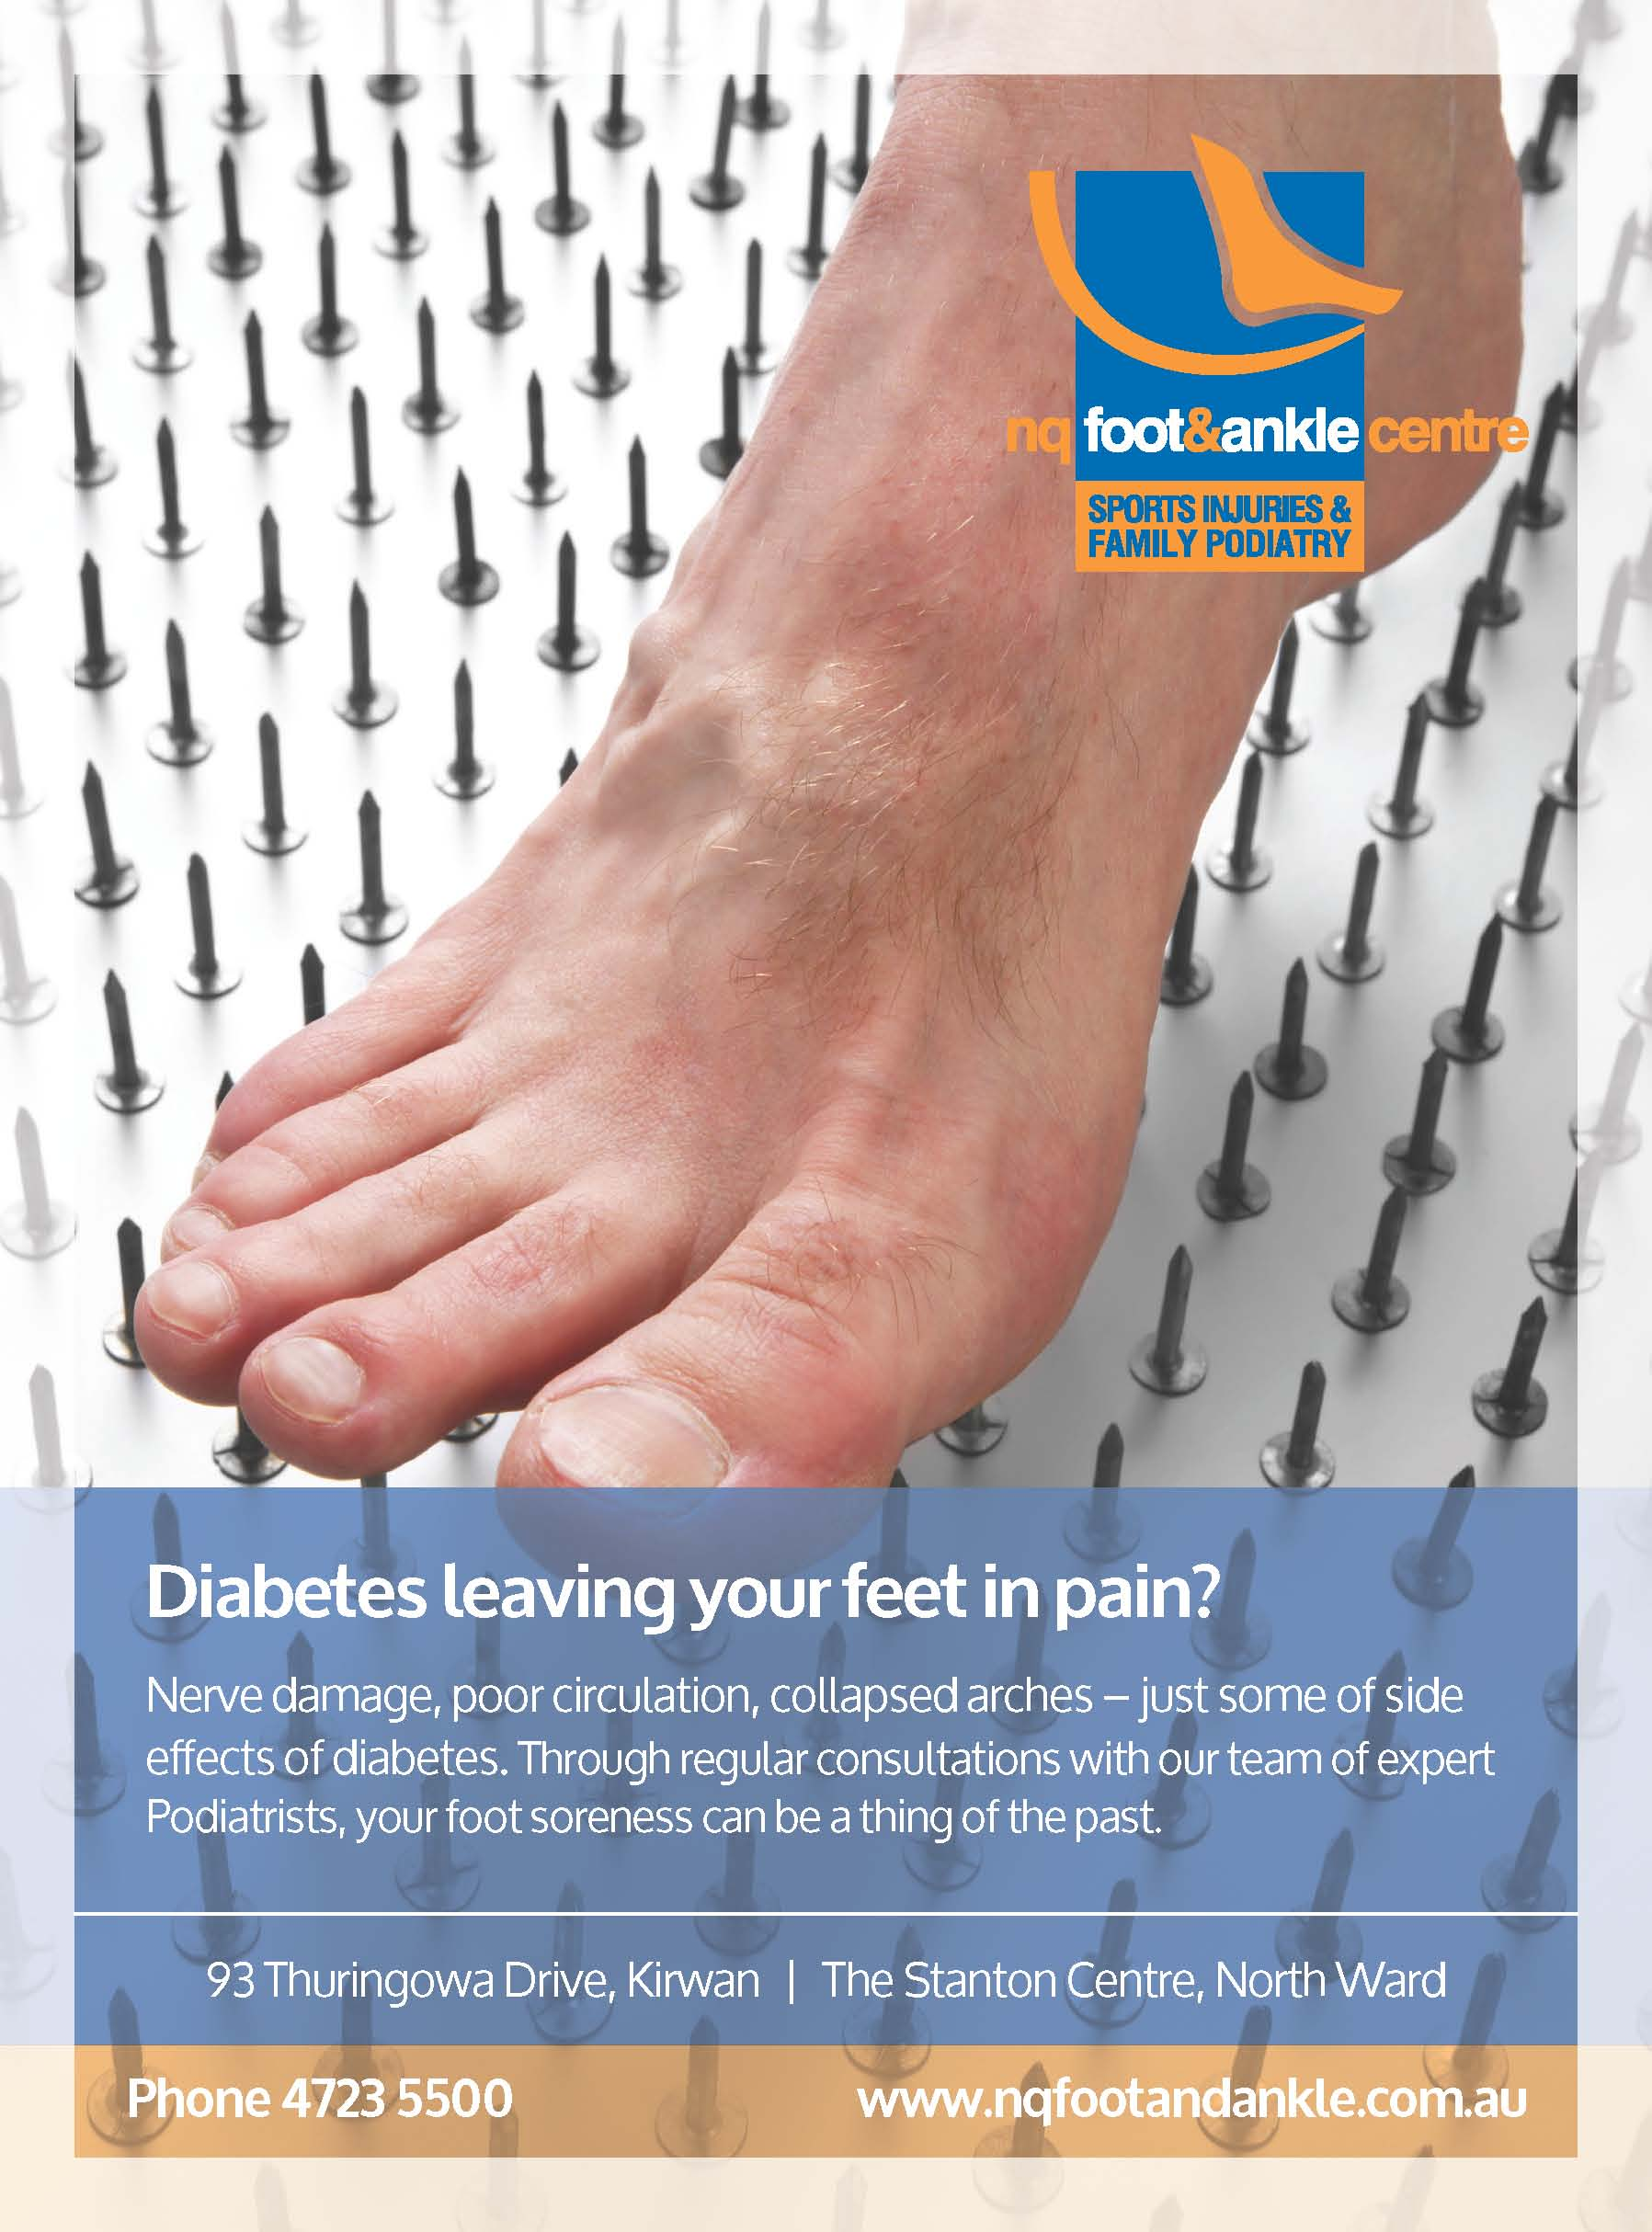 Top 10 Tips for Diabetic Foot Care